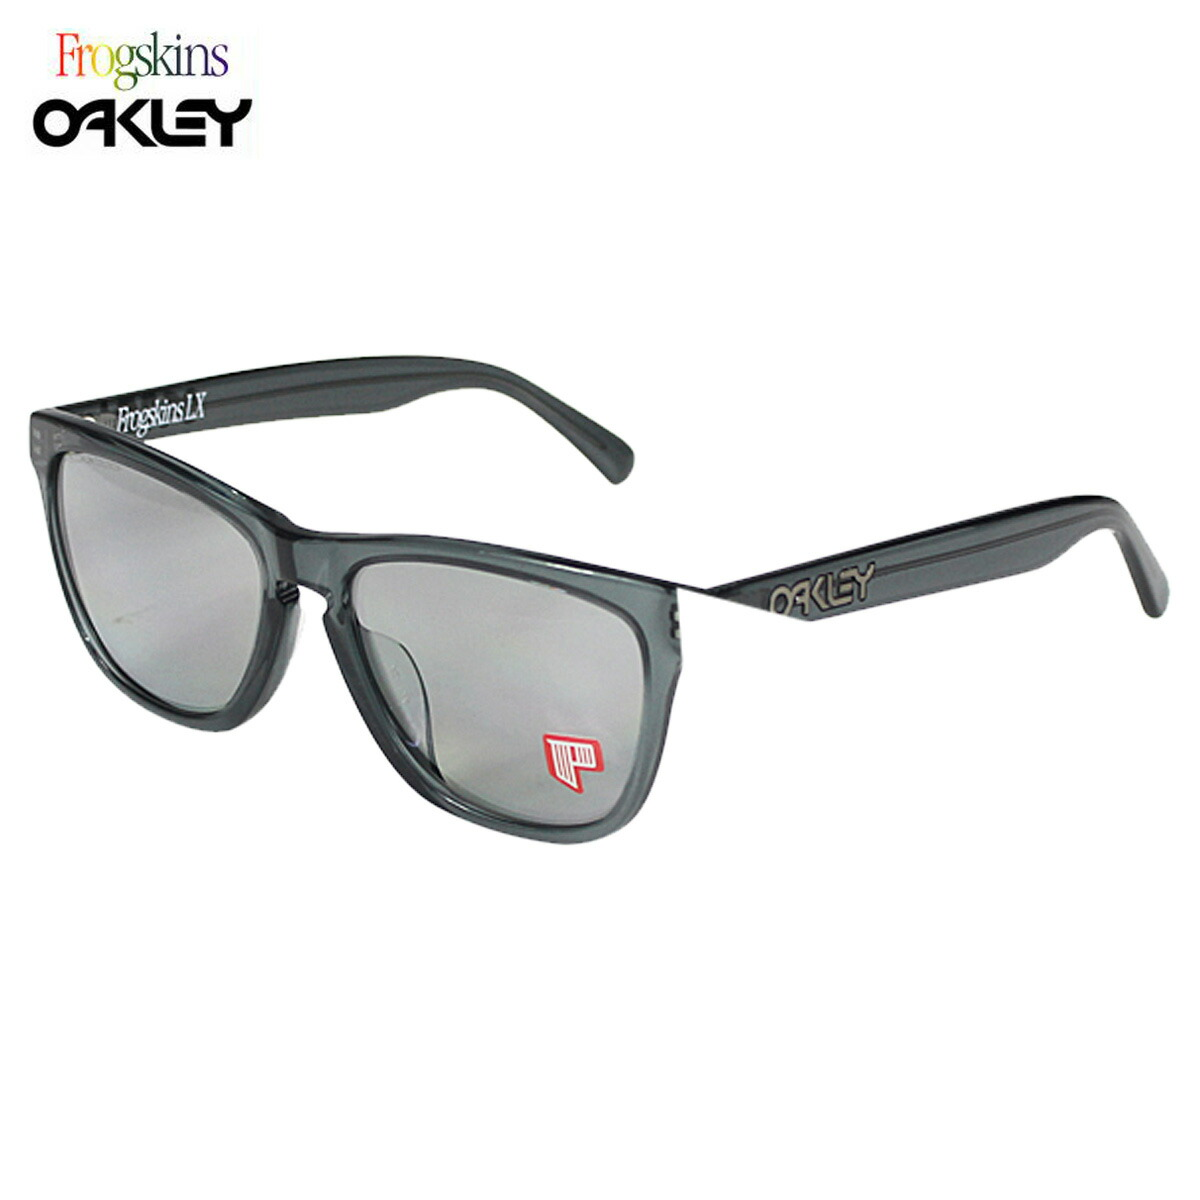 dfd88d1d26a usa allsports oakley oakley sunglasses polarized frogskins lx polarized  frog skin men womens polarized lens glasses